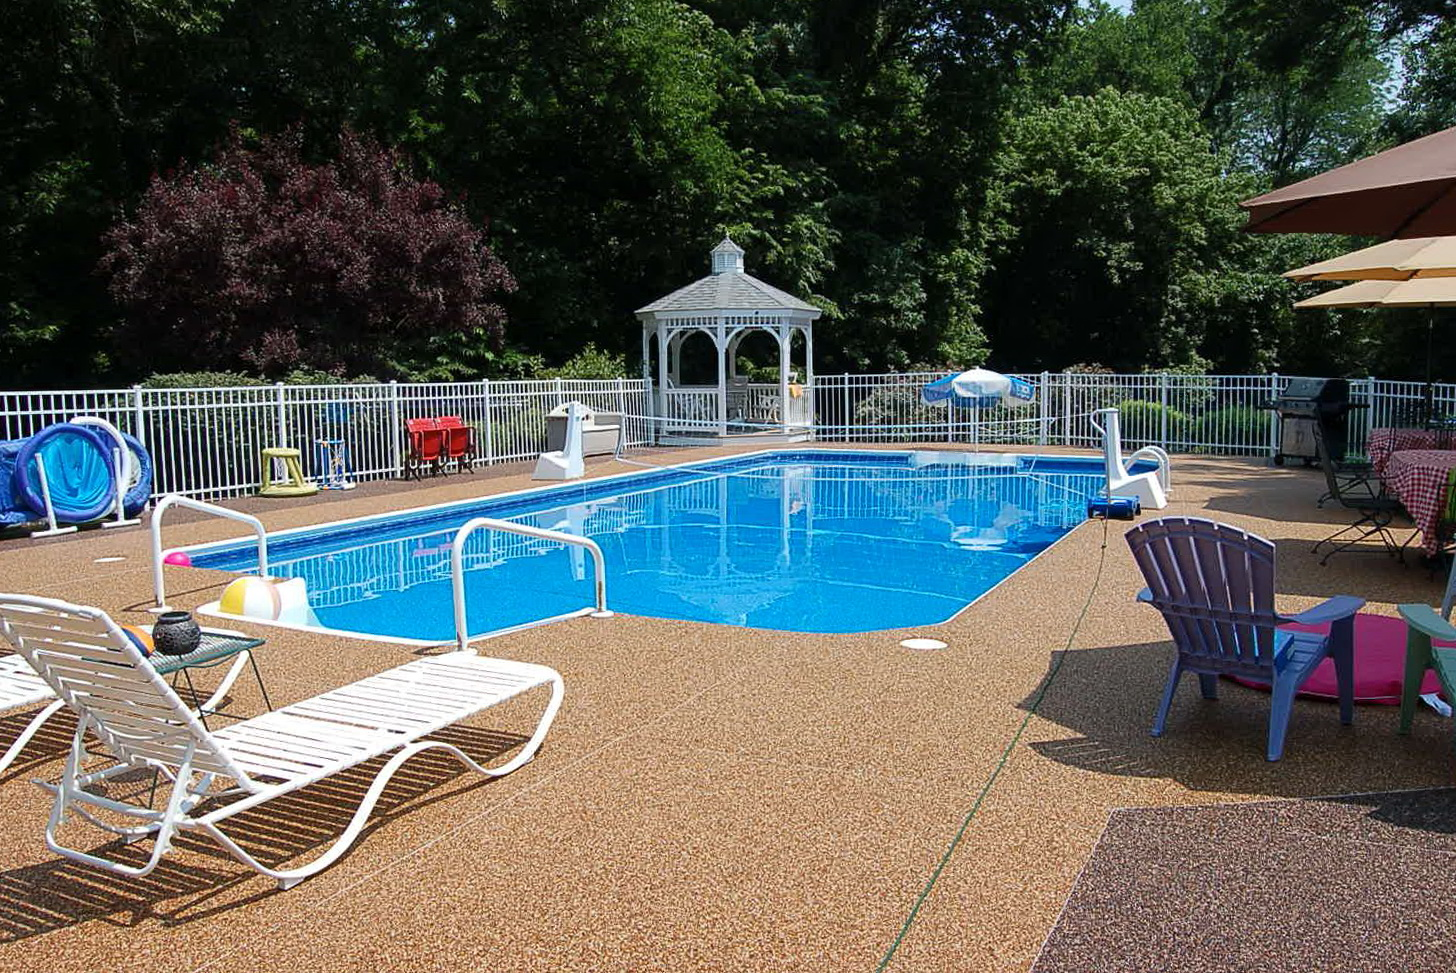 Pool deck plans free home design ideas for Free pool deck plans online